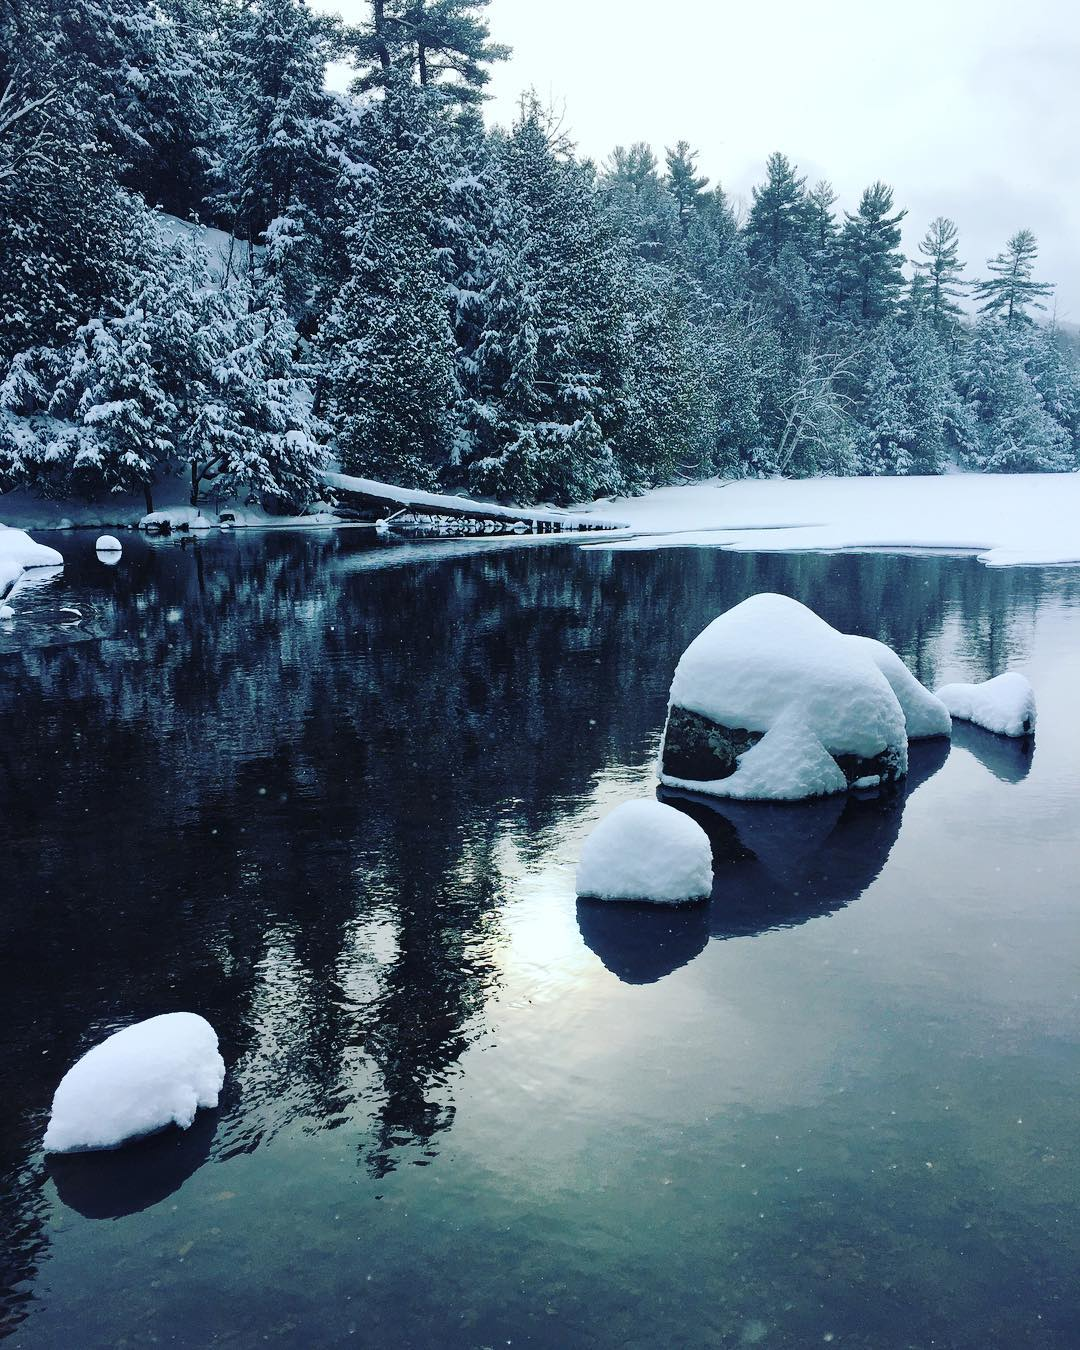 Meech Lake in winter Time